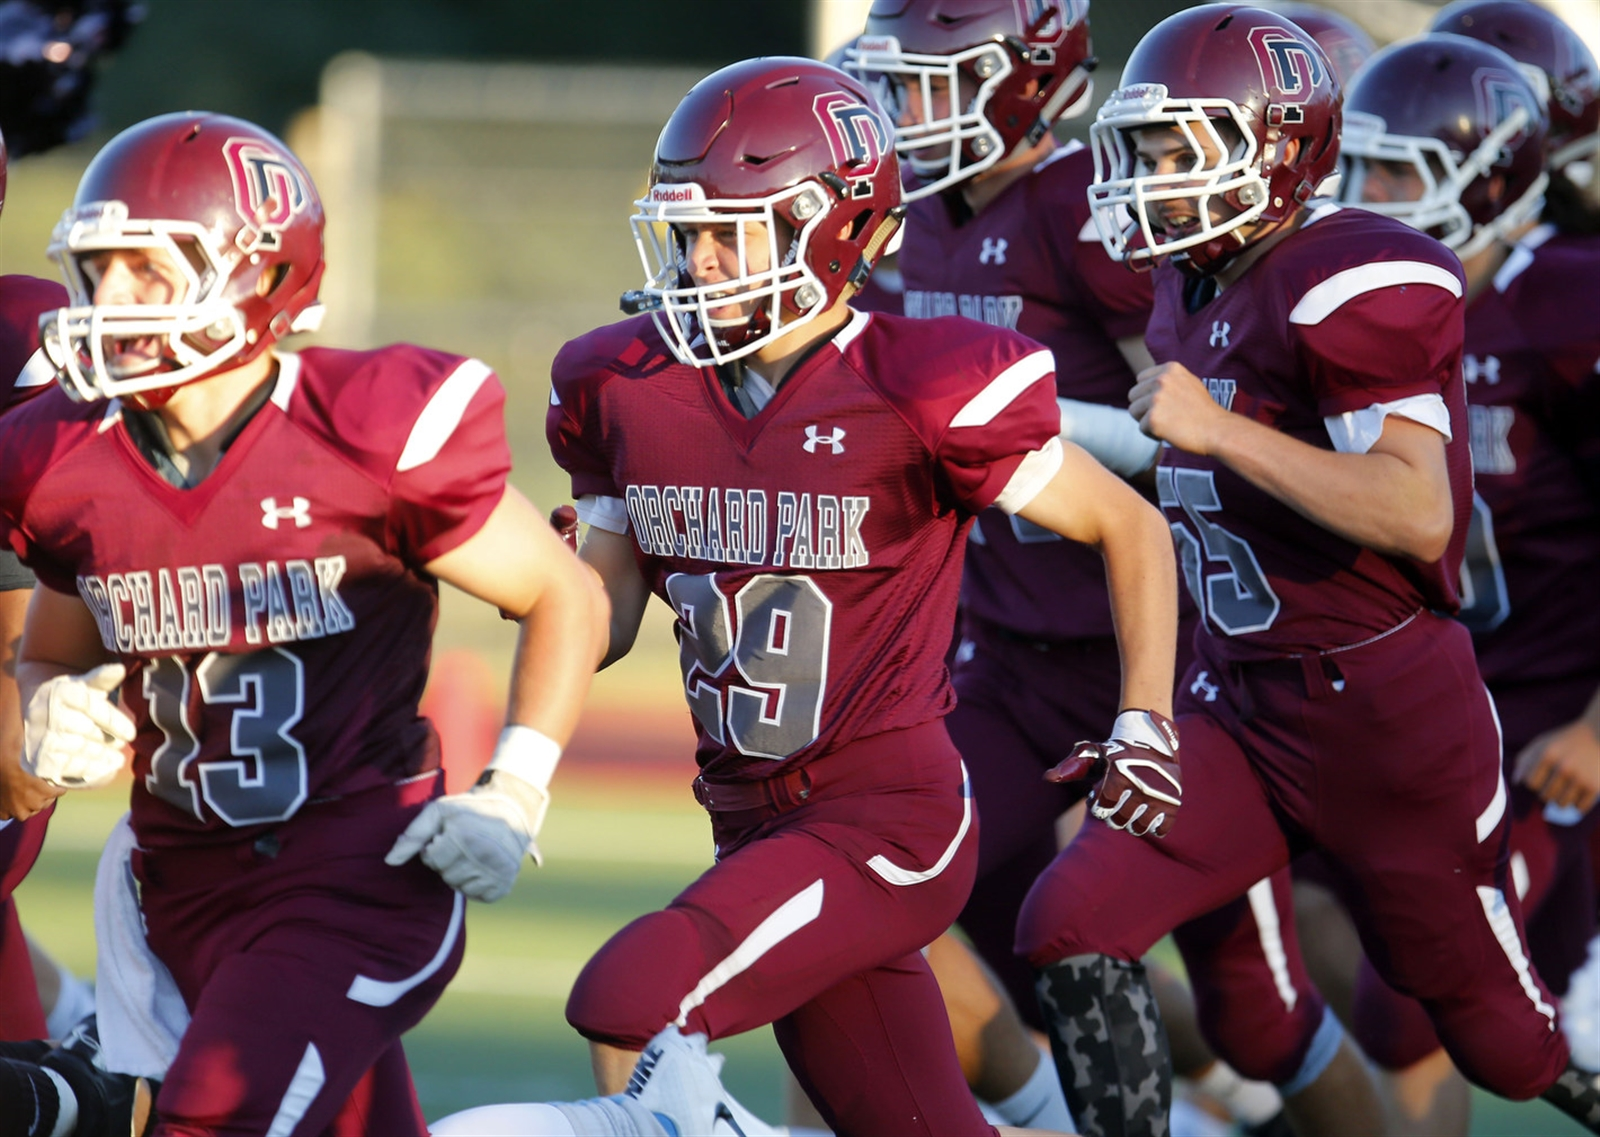 Jacob Kohler (29) takes the field with his Orchard Park teammates for the season opener against Pittsford Mendon Sept. 2 at OP.